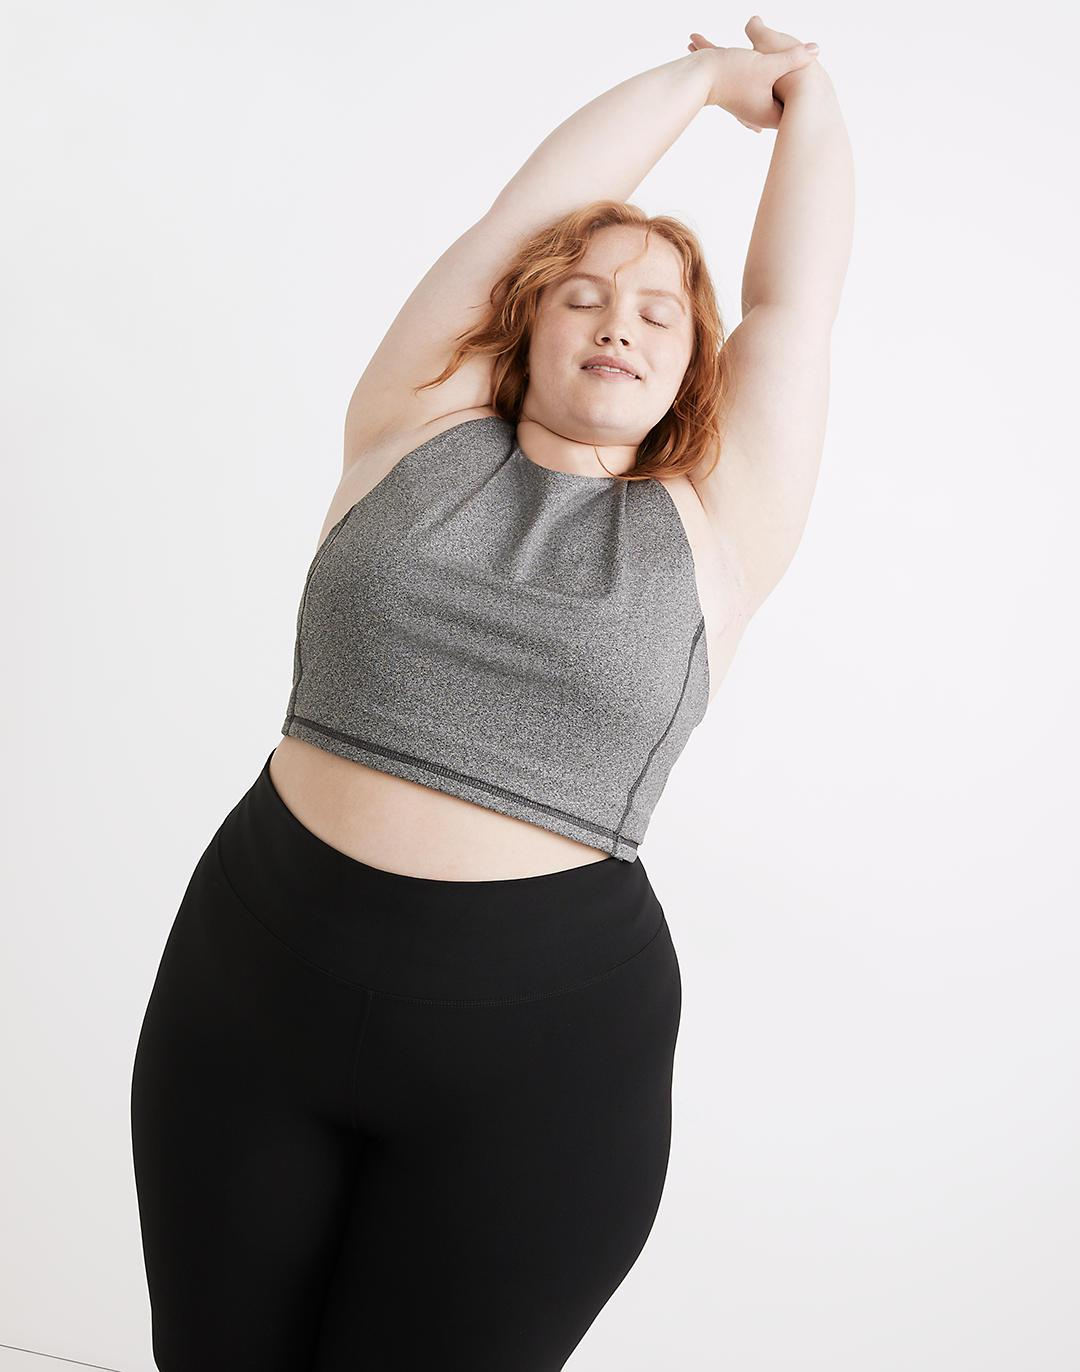 Plus MWL Form Racerback Crop Top in Heathered Charcoal